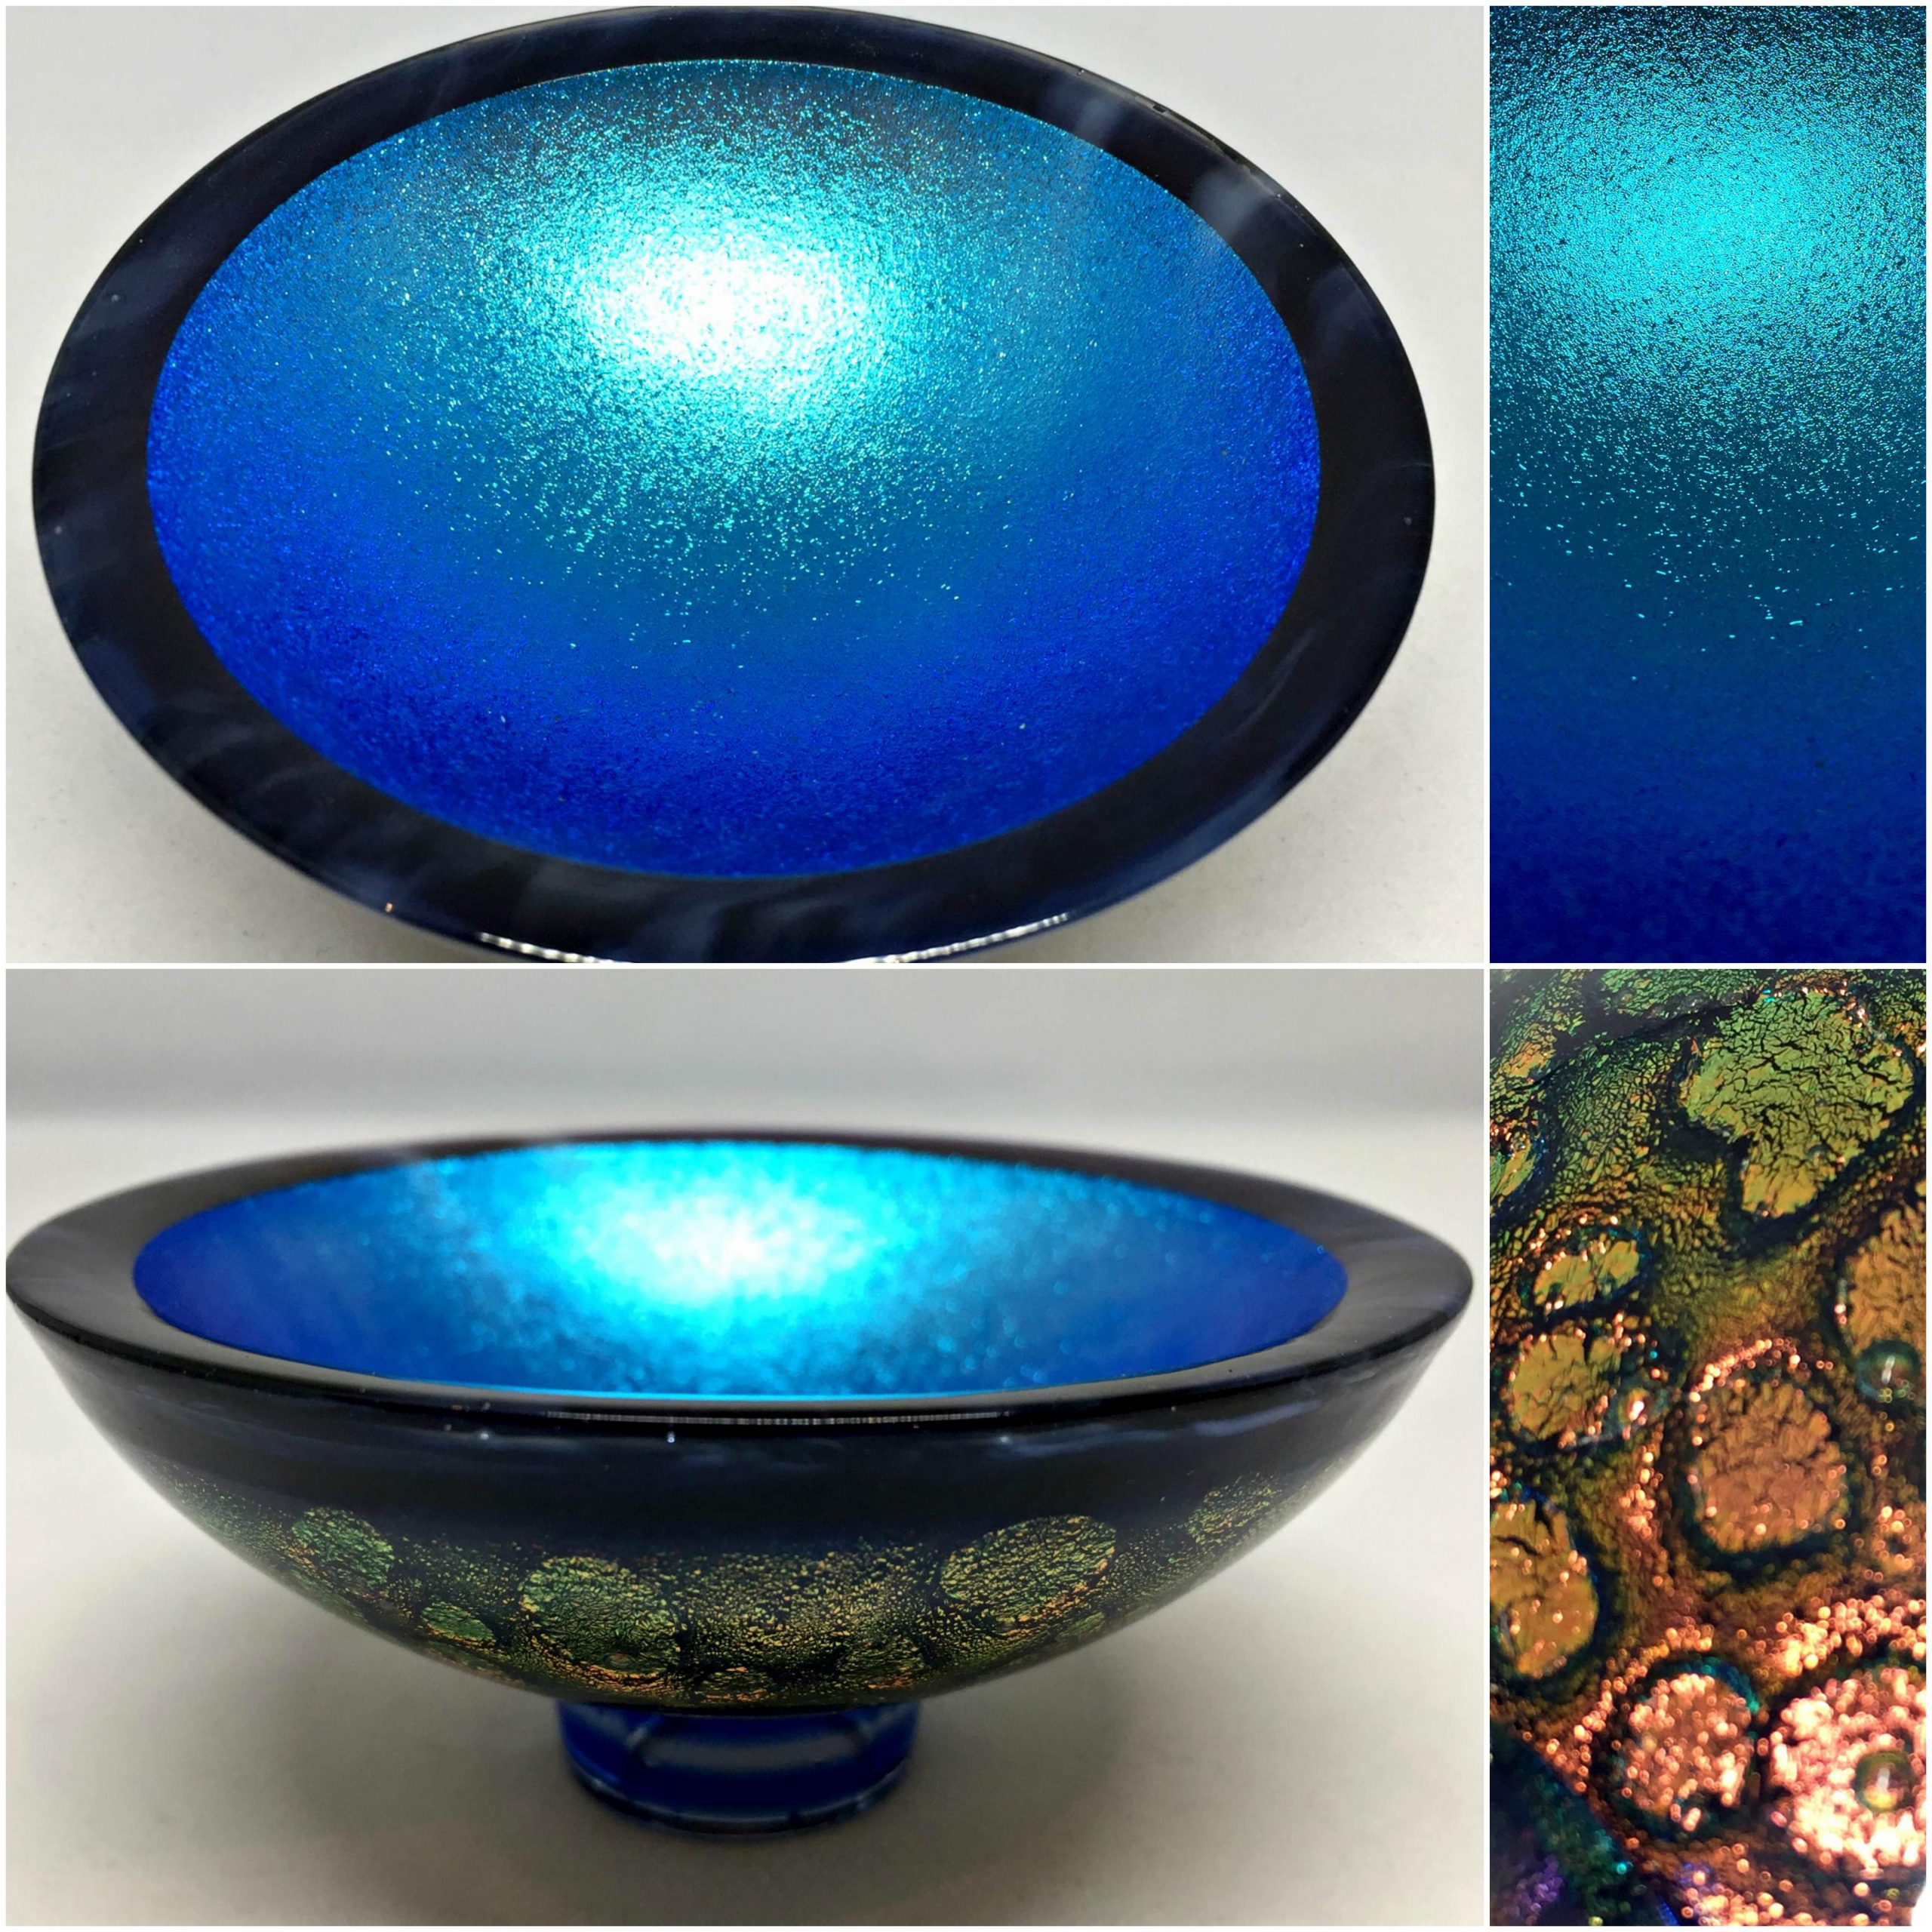 Thing of Beauty 3324, one-of-a-kind multichrome dichroic glass bowl by Jo Ludwig | Effusion Art Gallery + Glass Studio, Invermere BC